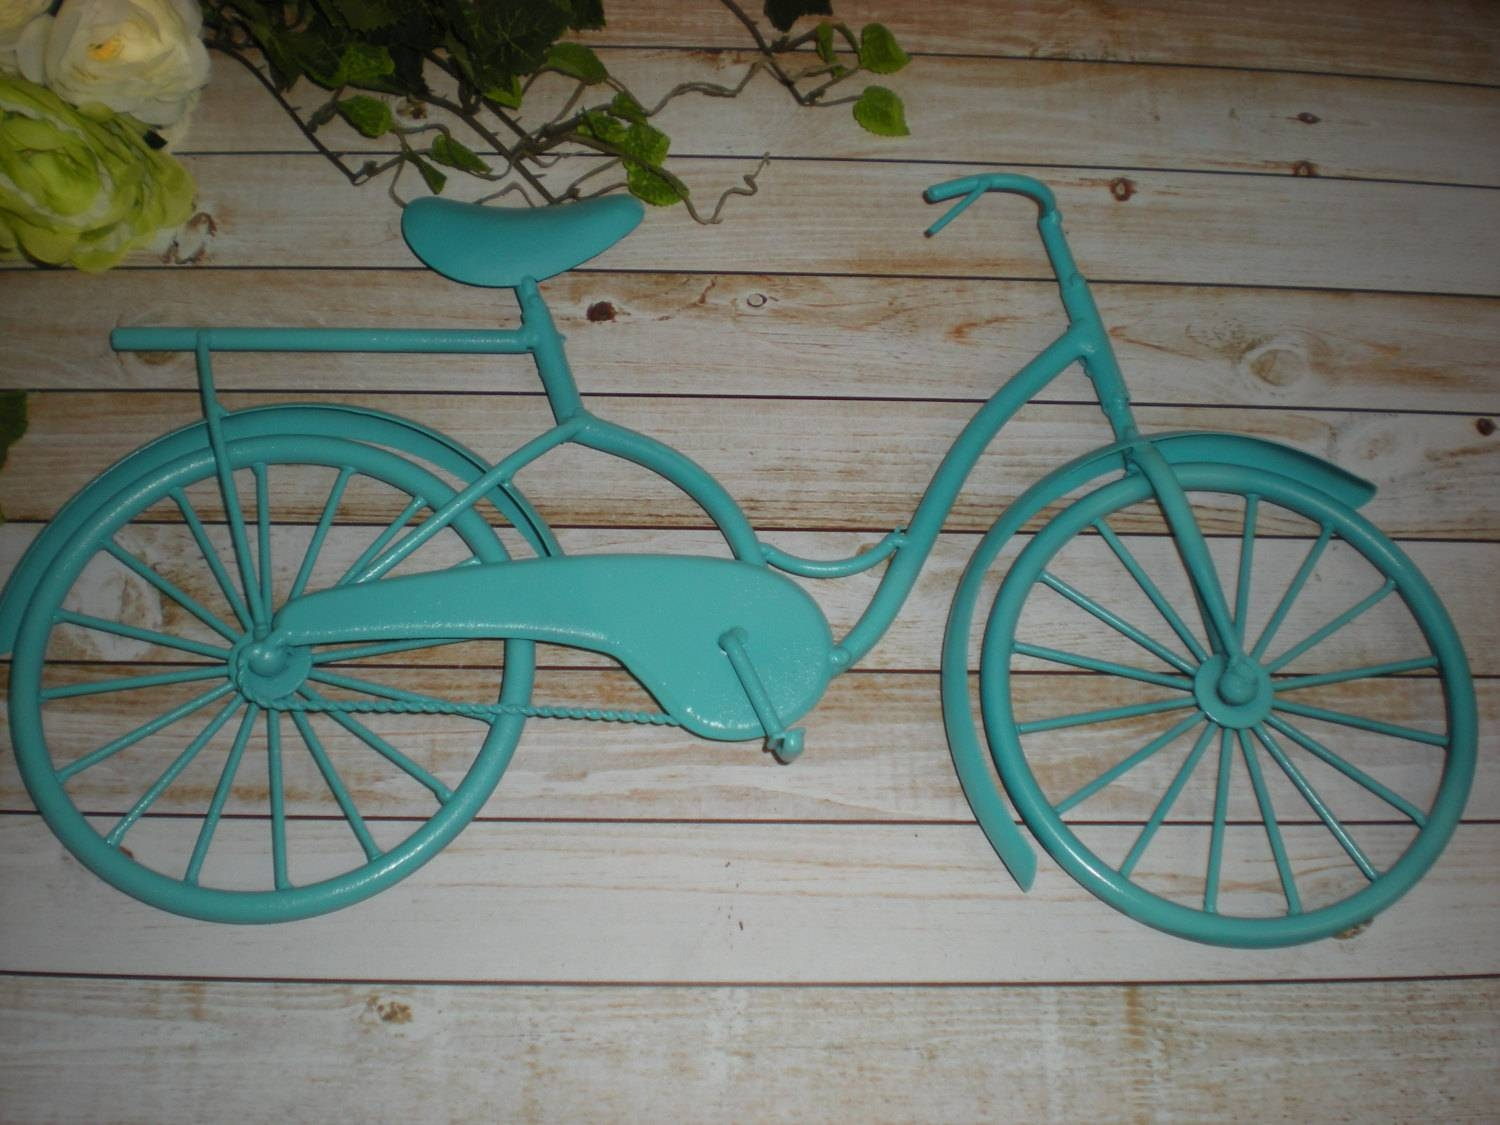 Winsome Metal Bicycle Wall Decor Bicycle Wall Art Wall Wrought Pertaining To Most Current Metal Bicycle Wall Art (View 20 of 20)